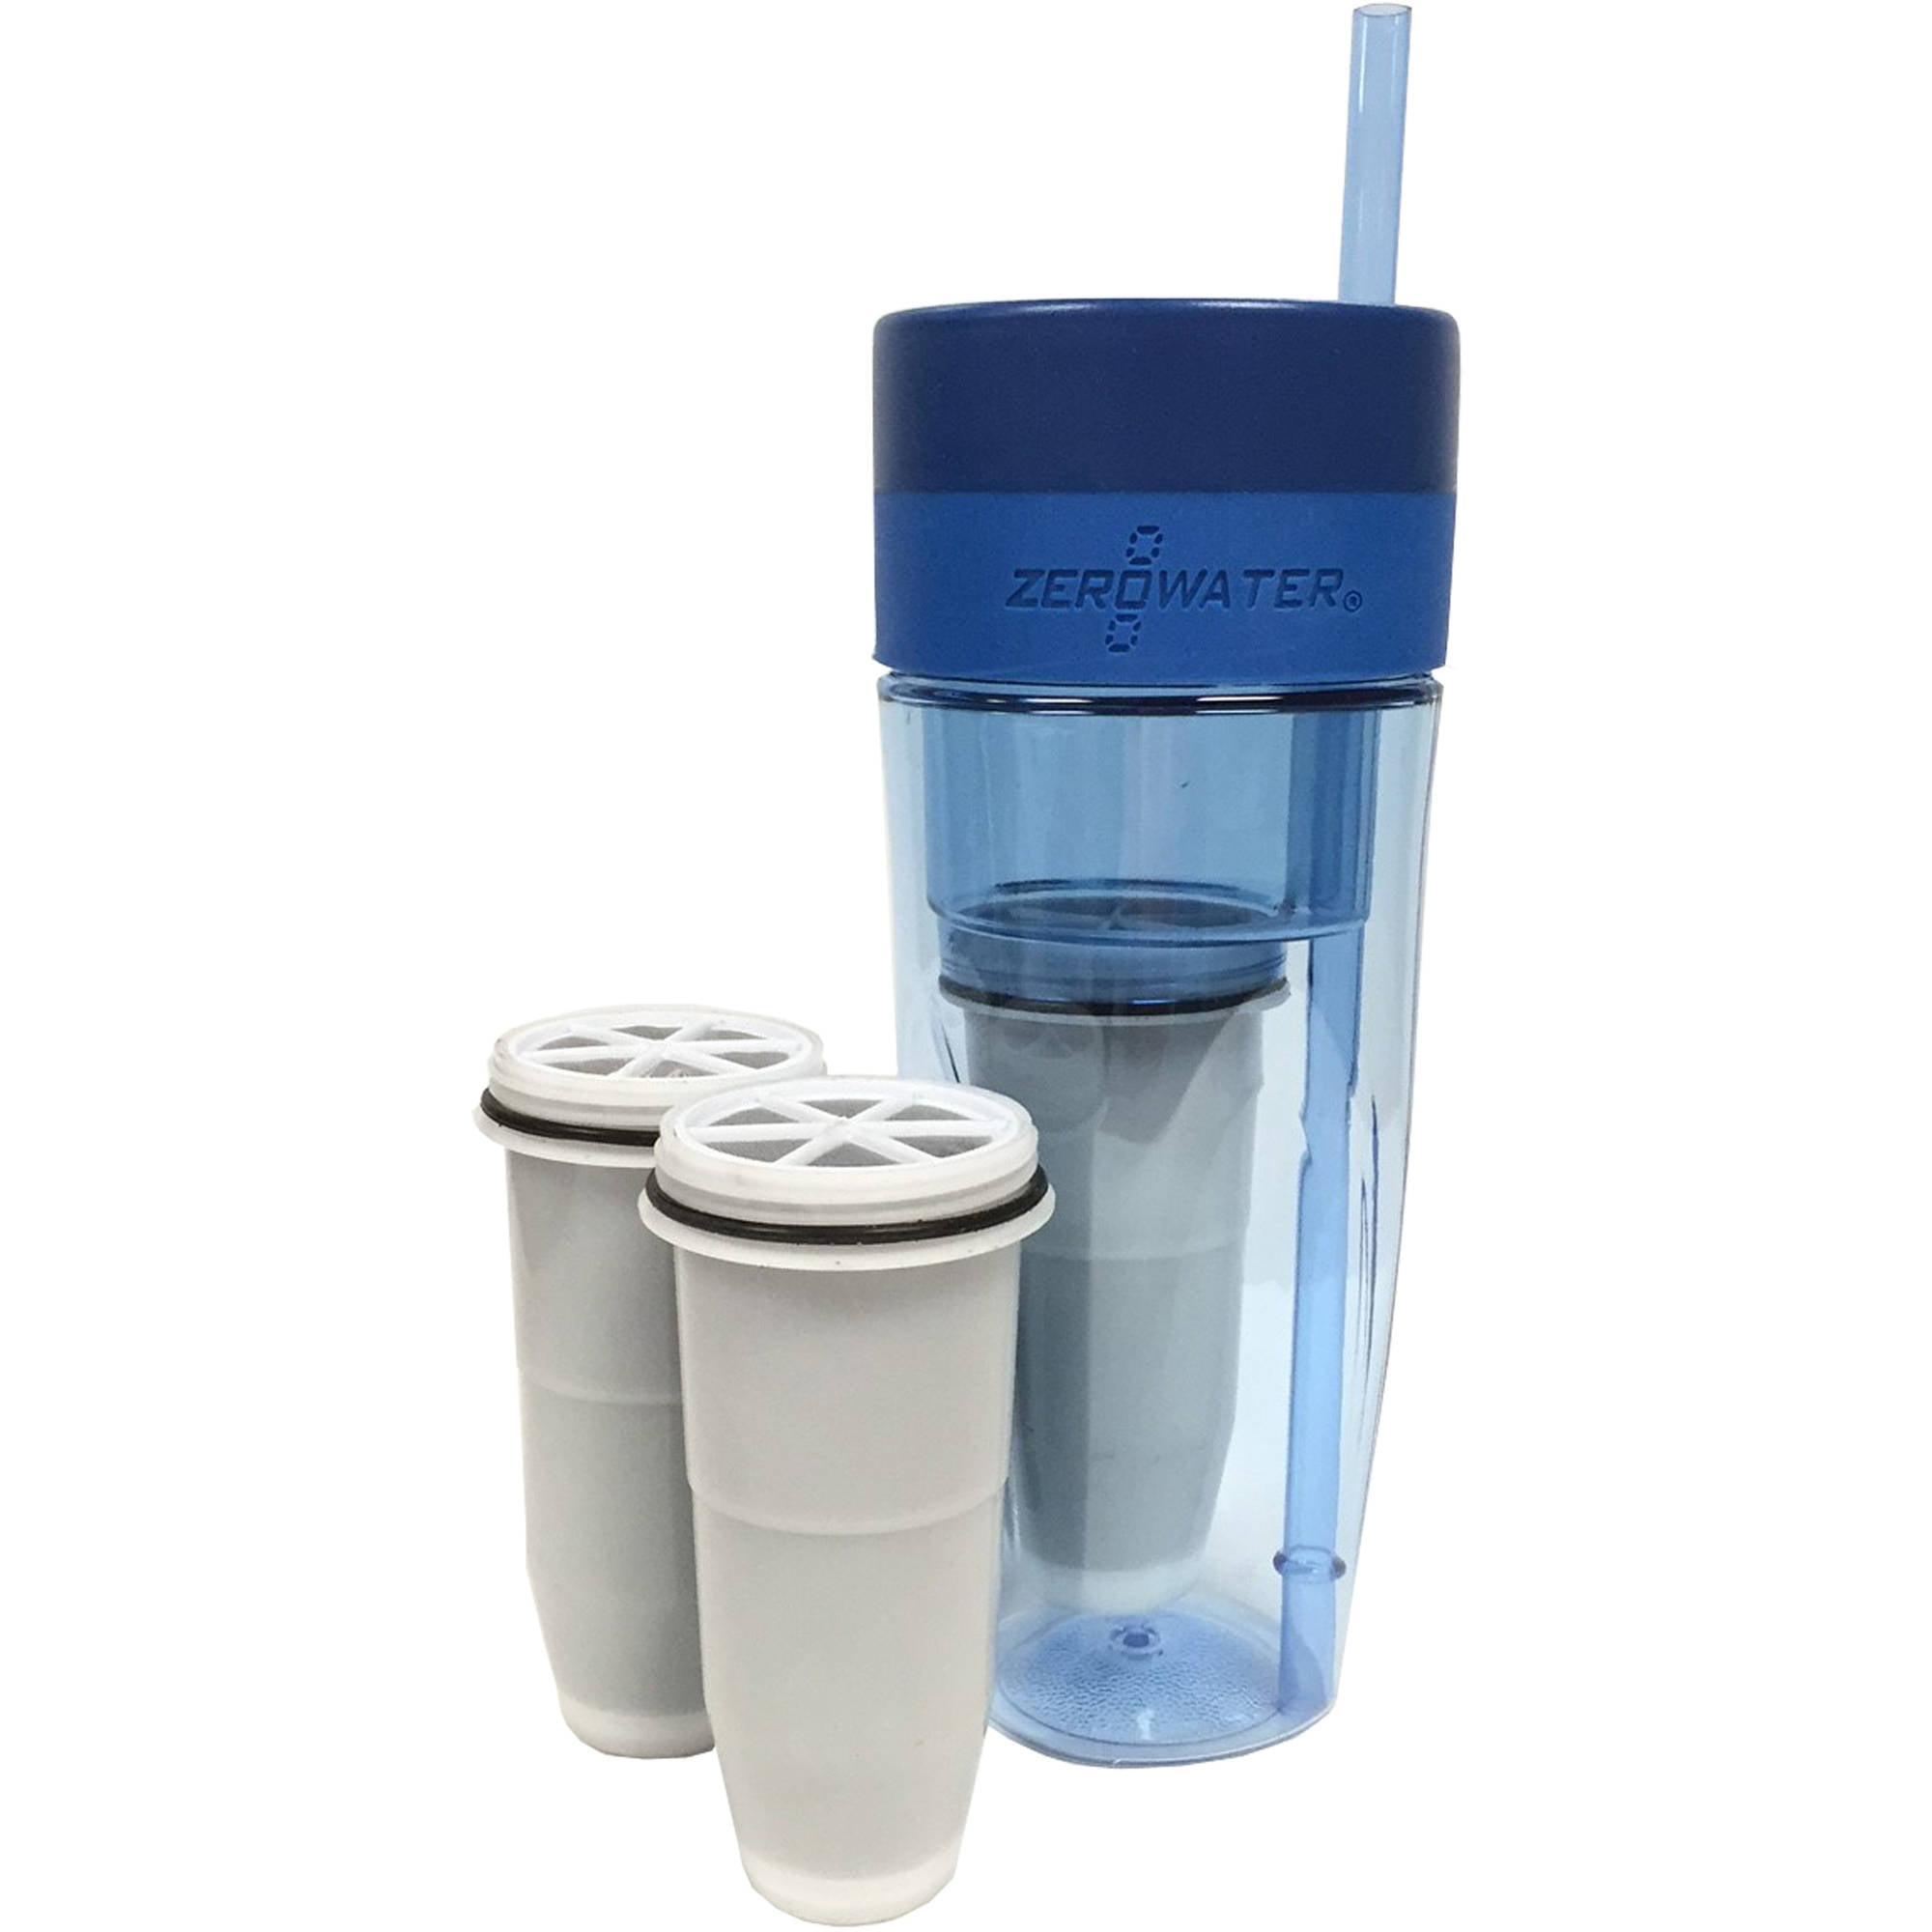 ZeroWater 26oz Portable Filtration Tumbler and 2-Pack of Replacement Filters by ZeroWater